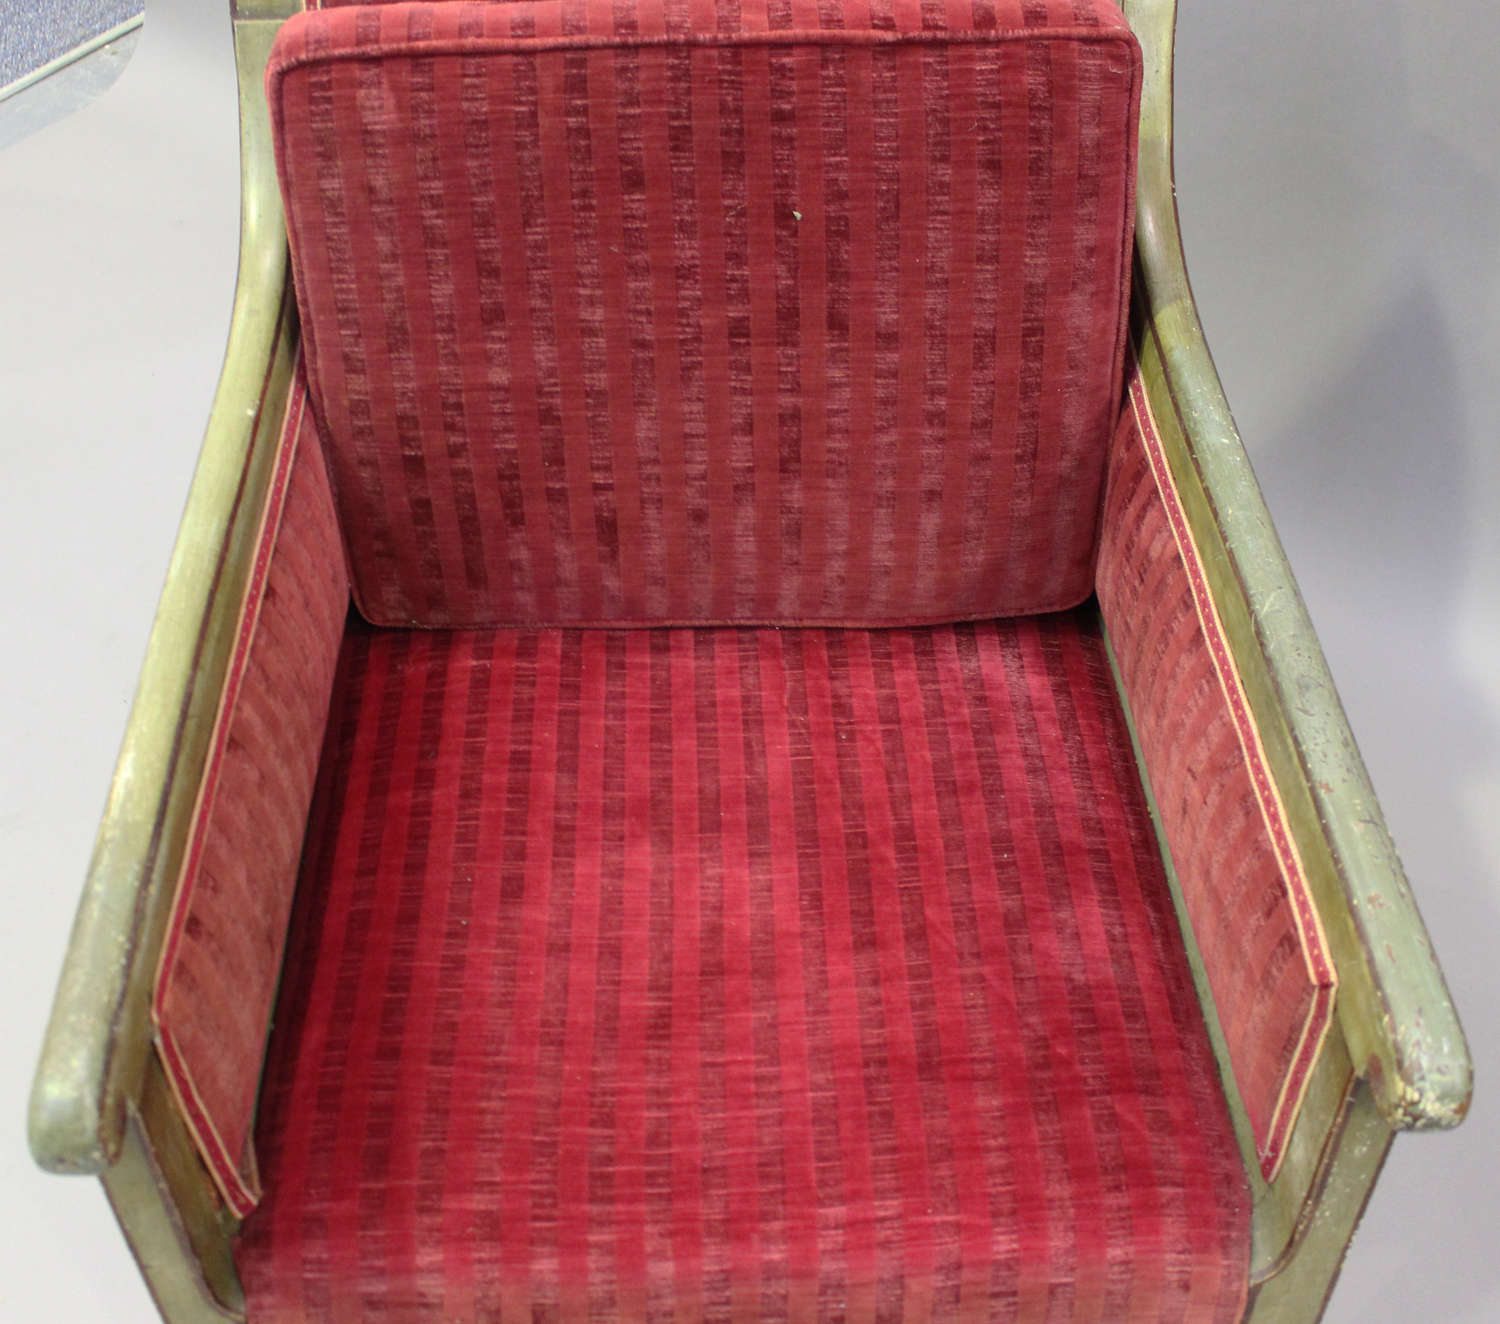 A 19th century Swedish green painted scroll armchair with foliate decoration, upholstered in red - Image 6 of 9